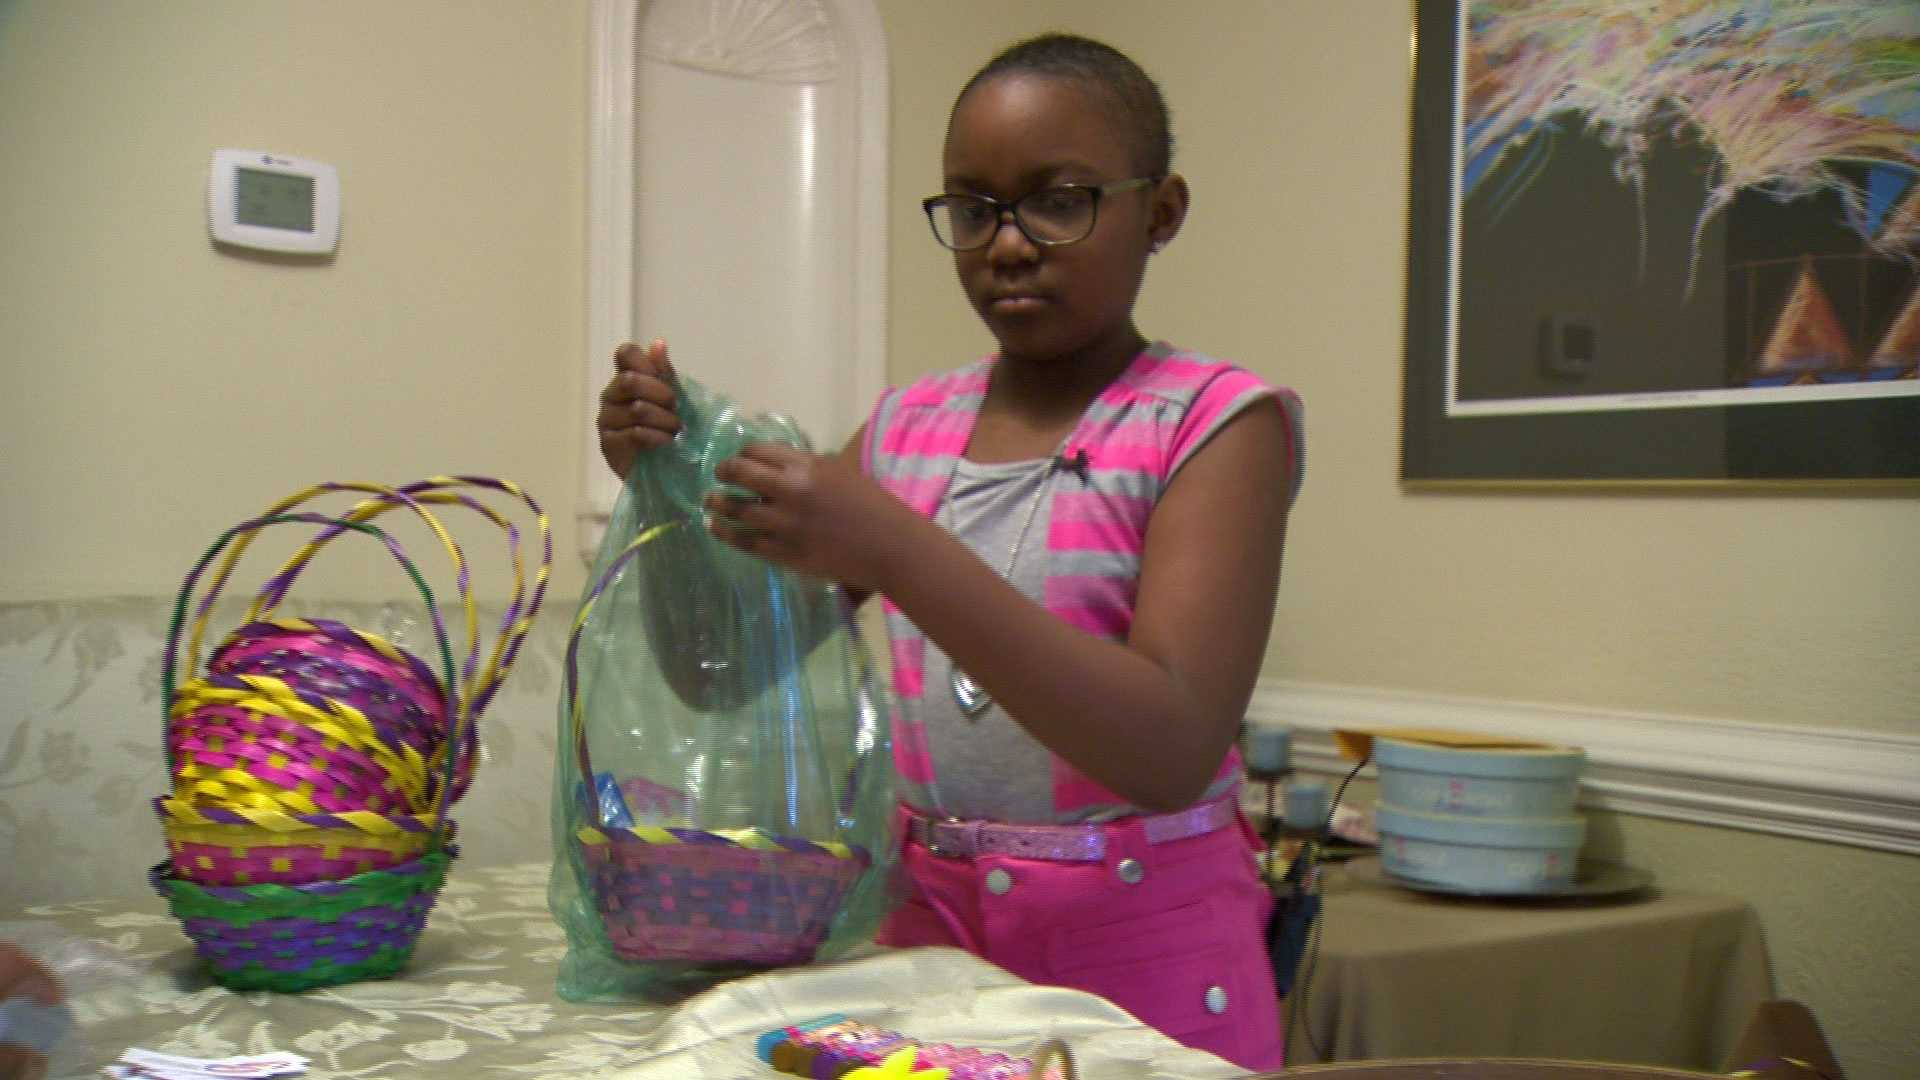 Grace Callwood, 9, packs Easter baskets for kids in need.